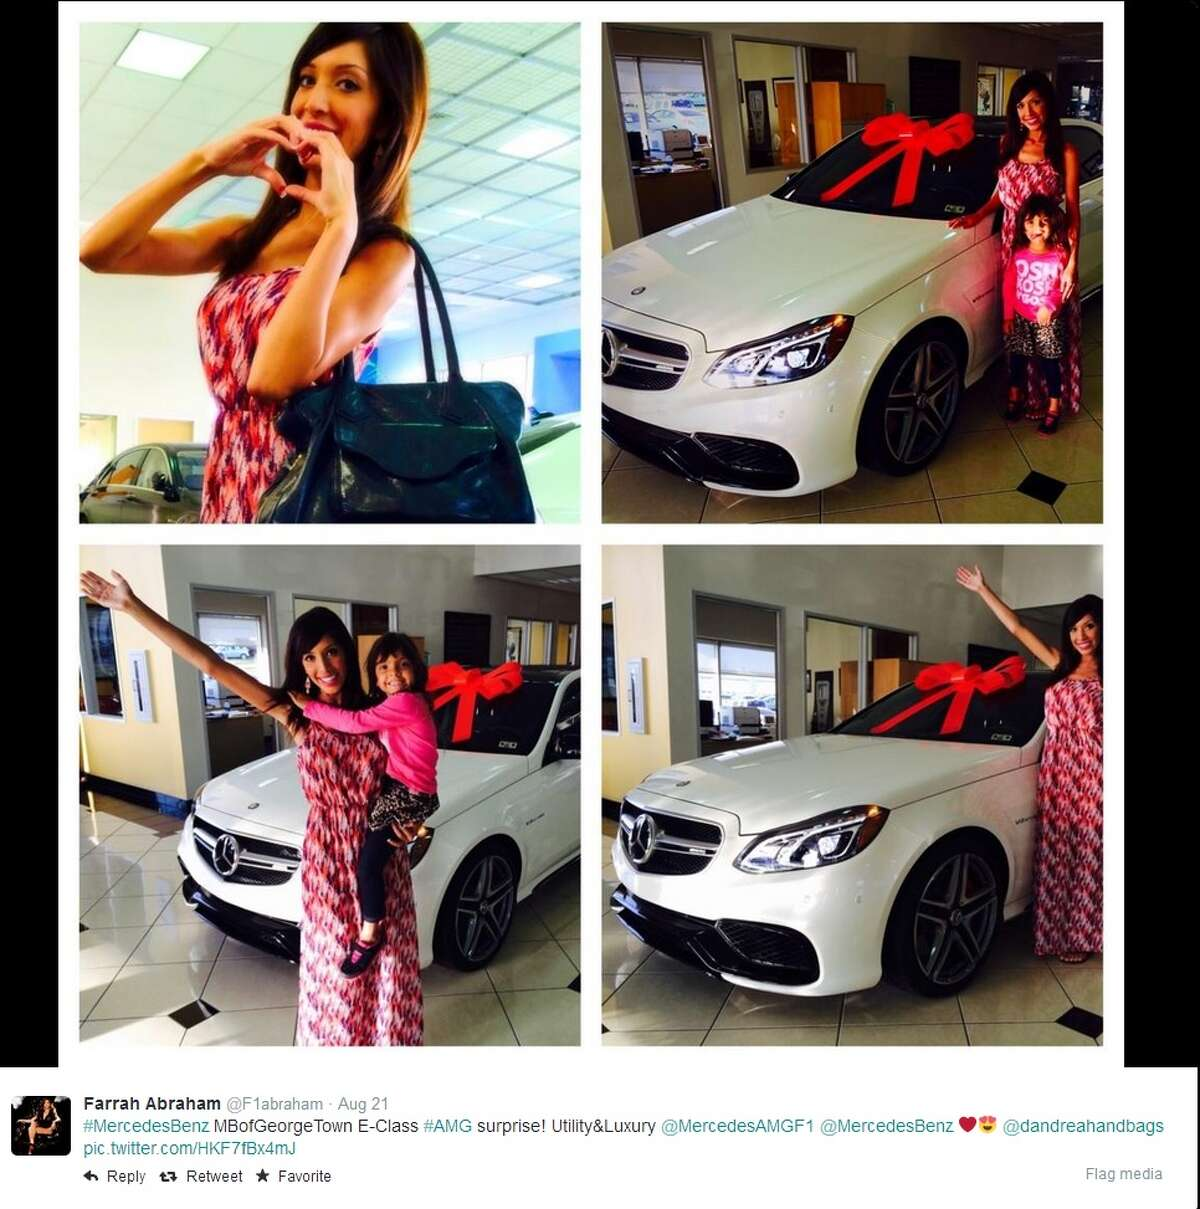 Farrah Abraham tweeted this photo of her new Mercedes-Benz on August 21, 2014 from the dealership in Georgetown. To find out which other celebrities have been strippers in the past, click through the slideshow.